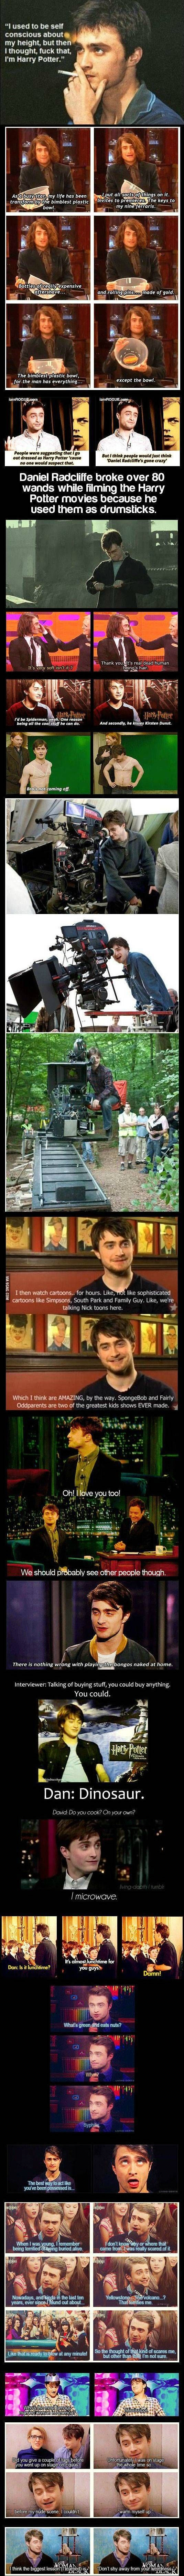 Daniel Radcliffe is like the male version of Jennifer Lawrence.>>>> That comment.